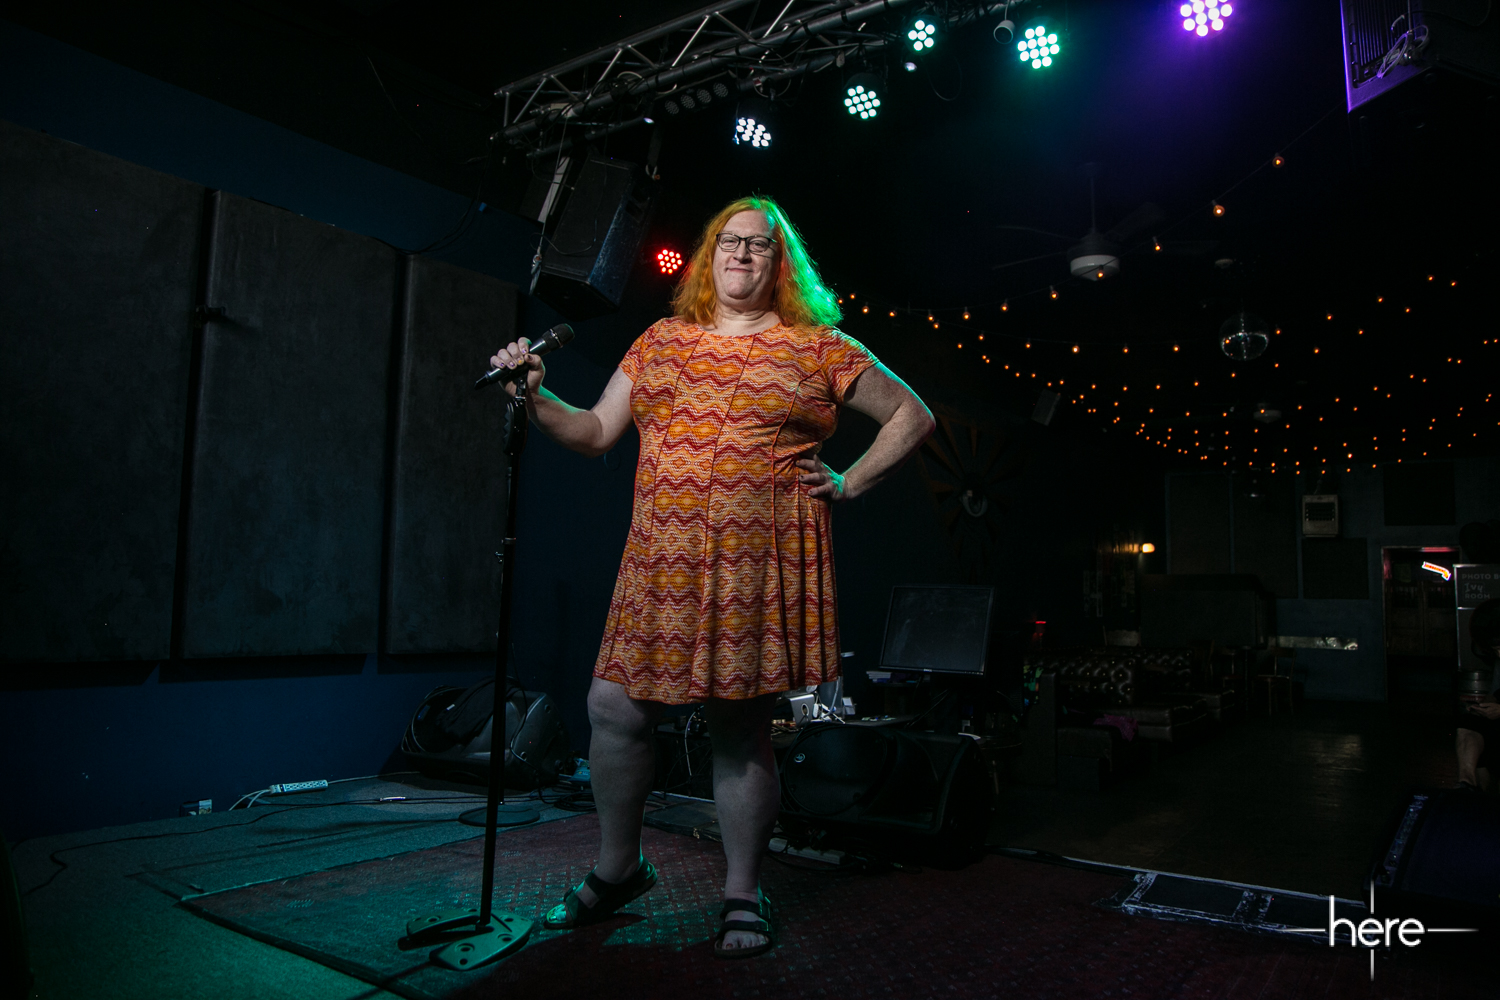 Dana Morrigan on a stage in an orange dress, holding a mic on a stand, her hair illuminated green by the stage lights.